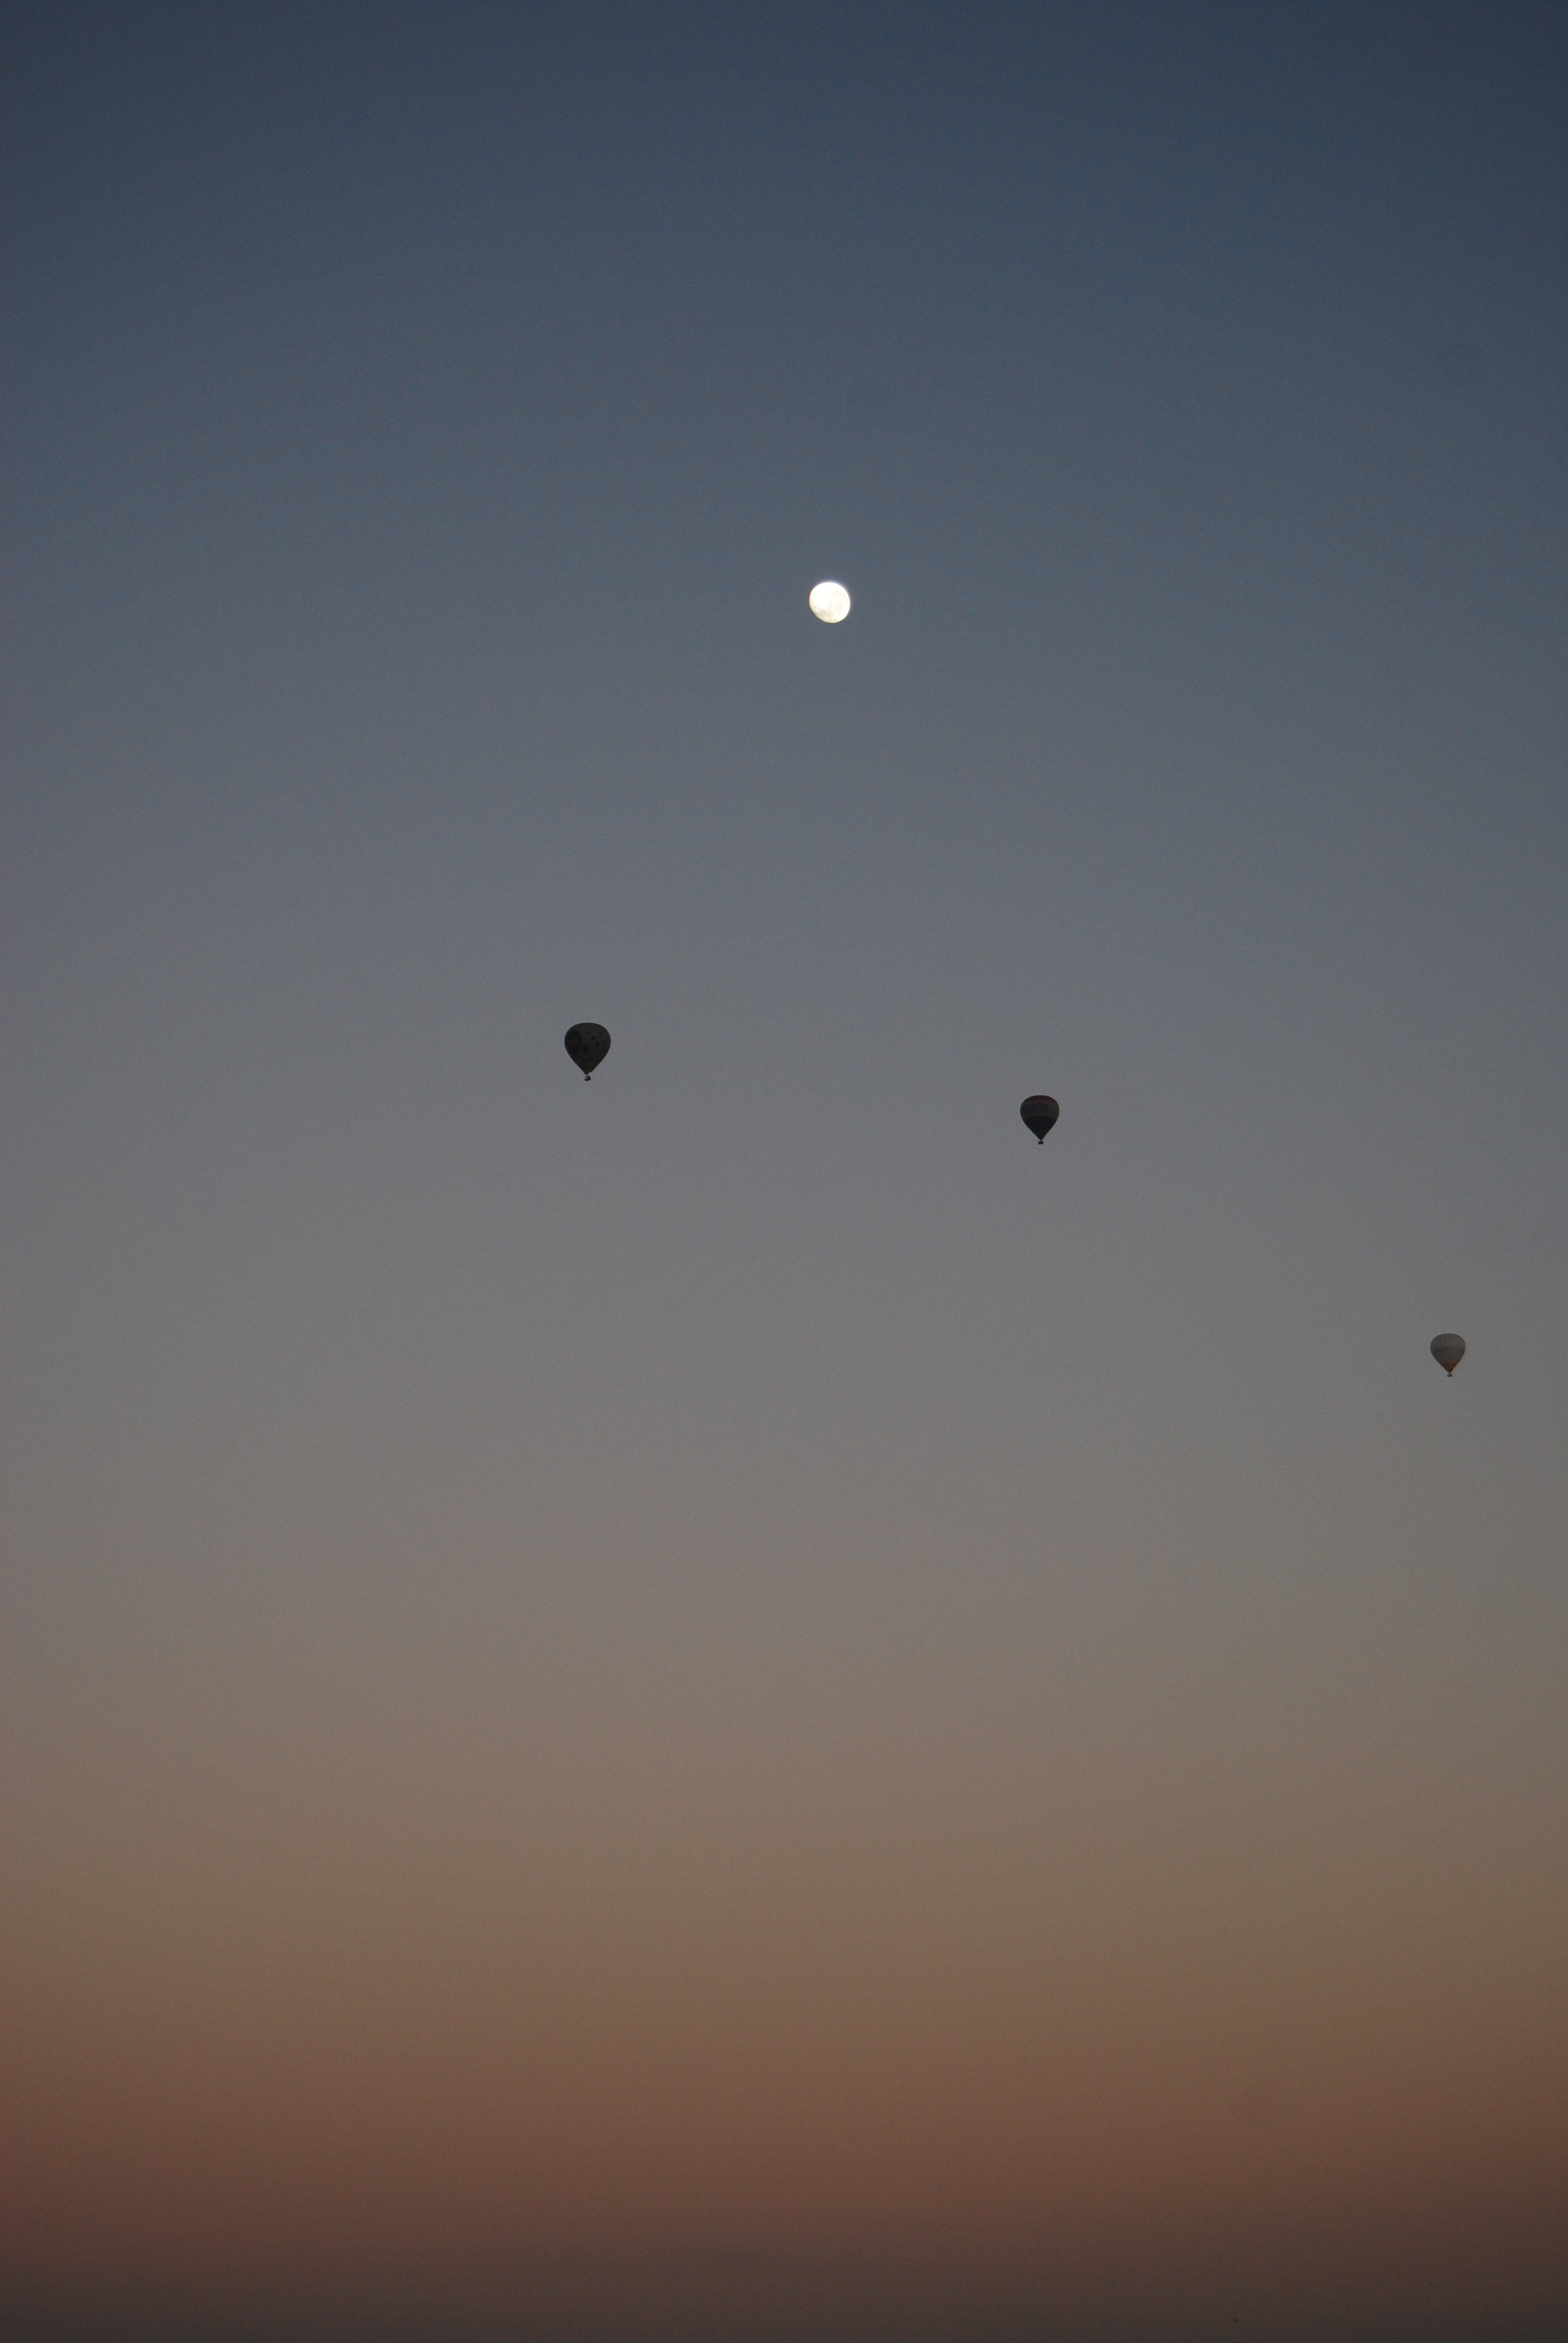 'The Moon and Three Balloons' © Naida Ginnane 2010,Nikon D800, 24-70mm lens. f/5.3, 1/100, ISO 200. Subtle colours and very small shapes create a very peaceful and quiet moment in the early morning sky.